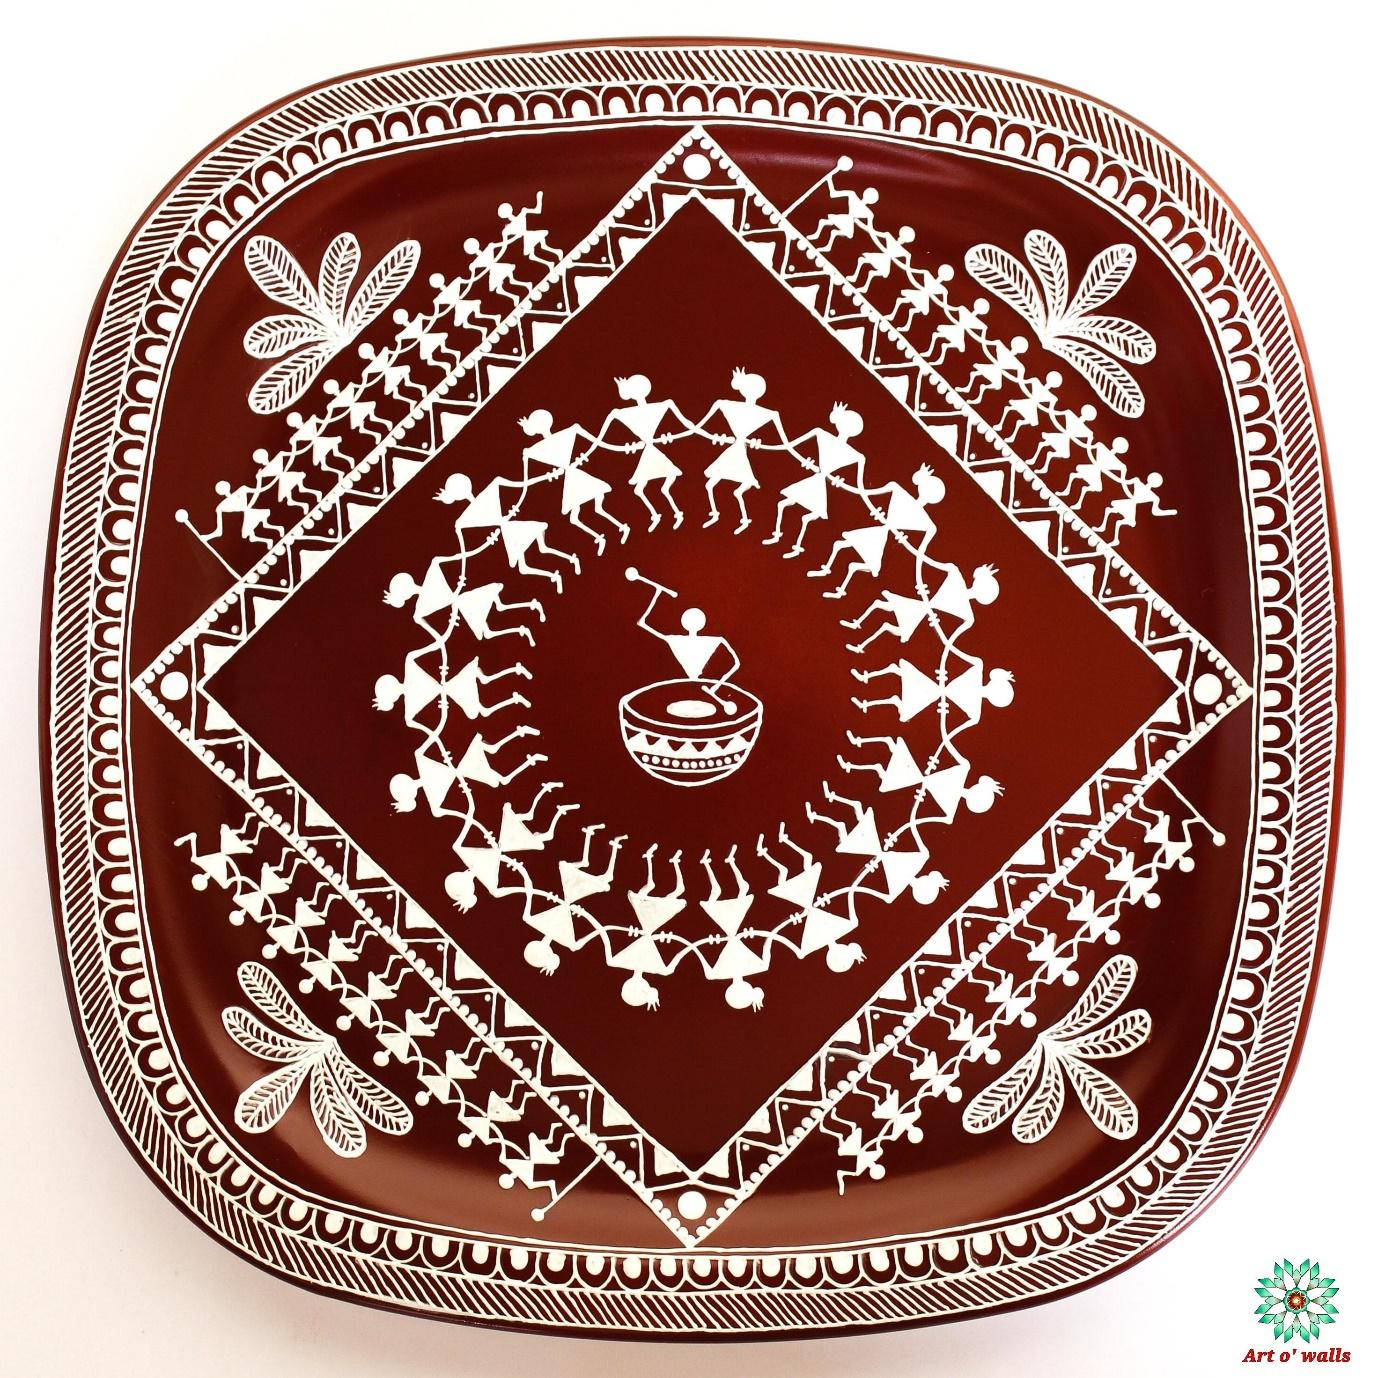 Warli Art Decorative plate(hanging): Square round